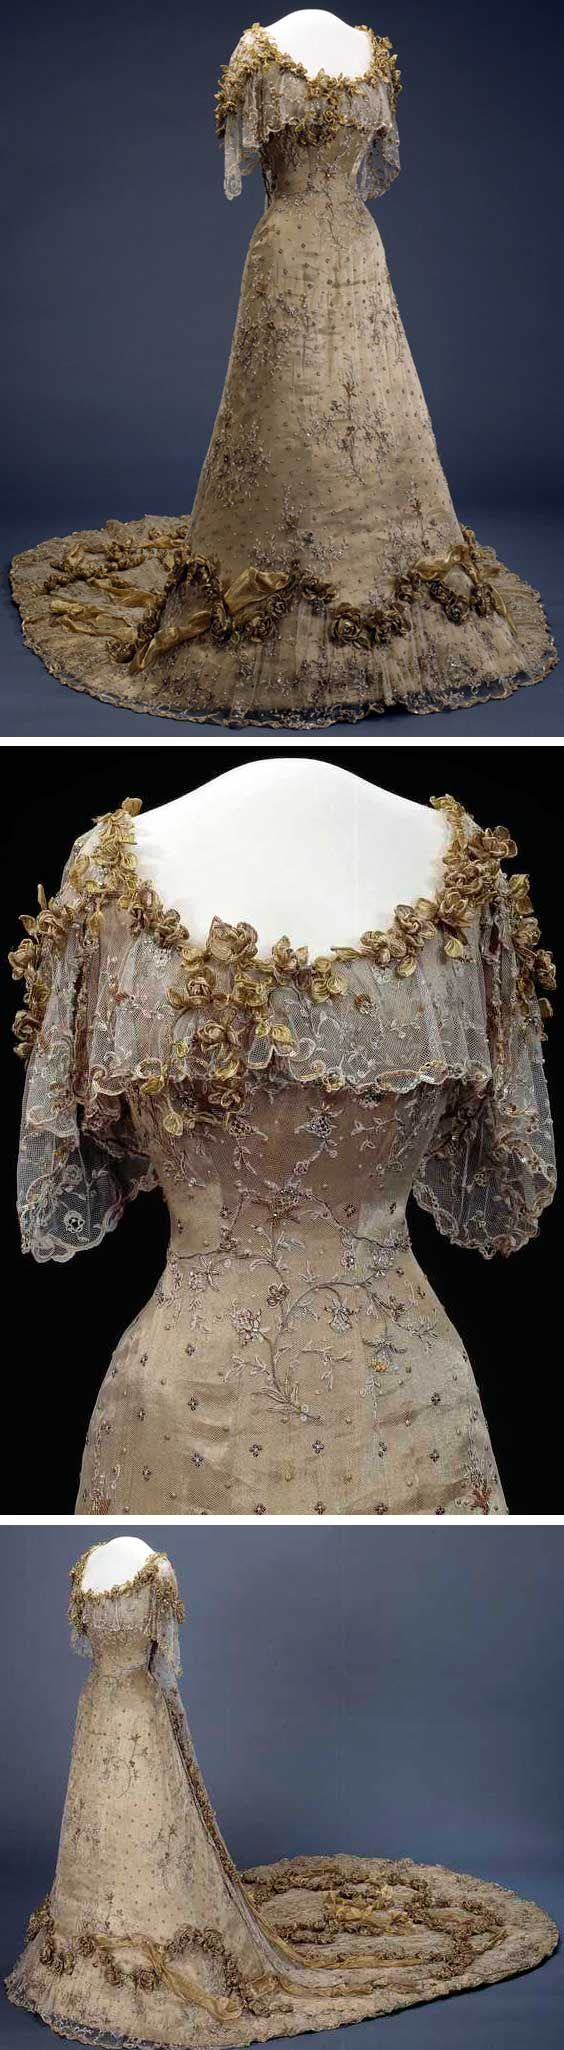 1906 or 1907 Gala dress Made for Queen Maud of Norway by Morin-Blossier, Paris. Machine- and hand-sewn gullaméstoff (I couldn't find a translation of this word), covered with silk tulle embroidered with metallic thread. Artificial diamonds and pearls, metal sequins, and gold fabric. Via National Museum for Art, Architecture, and Design, Norway